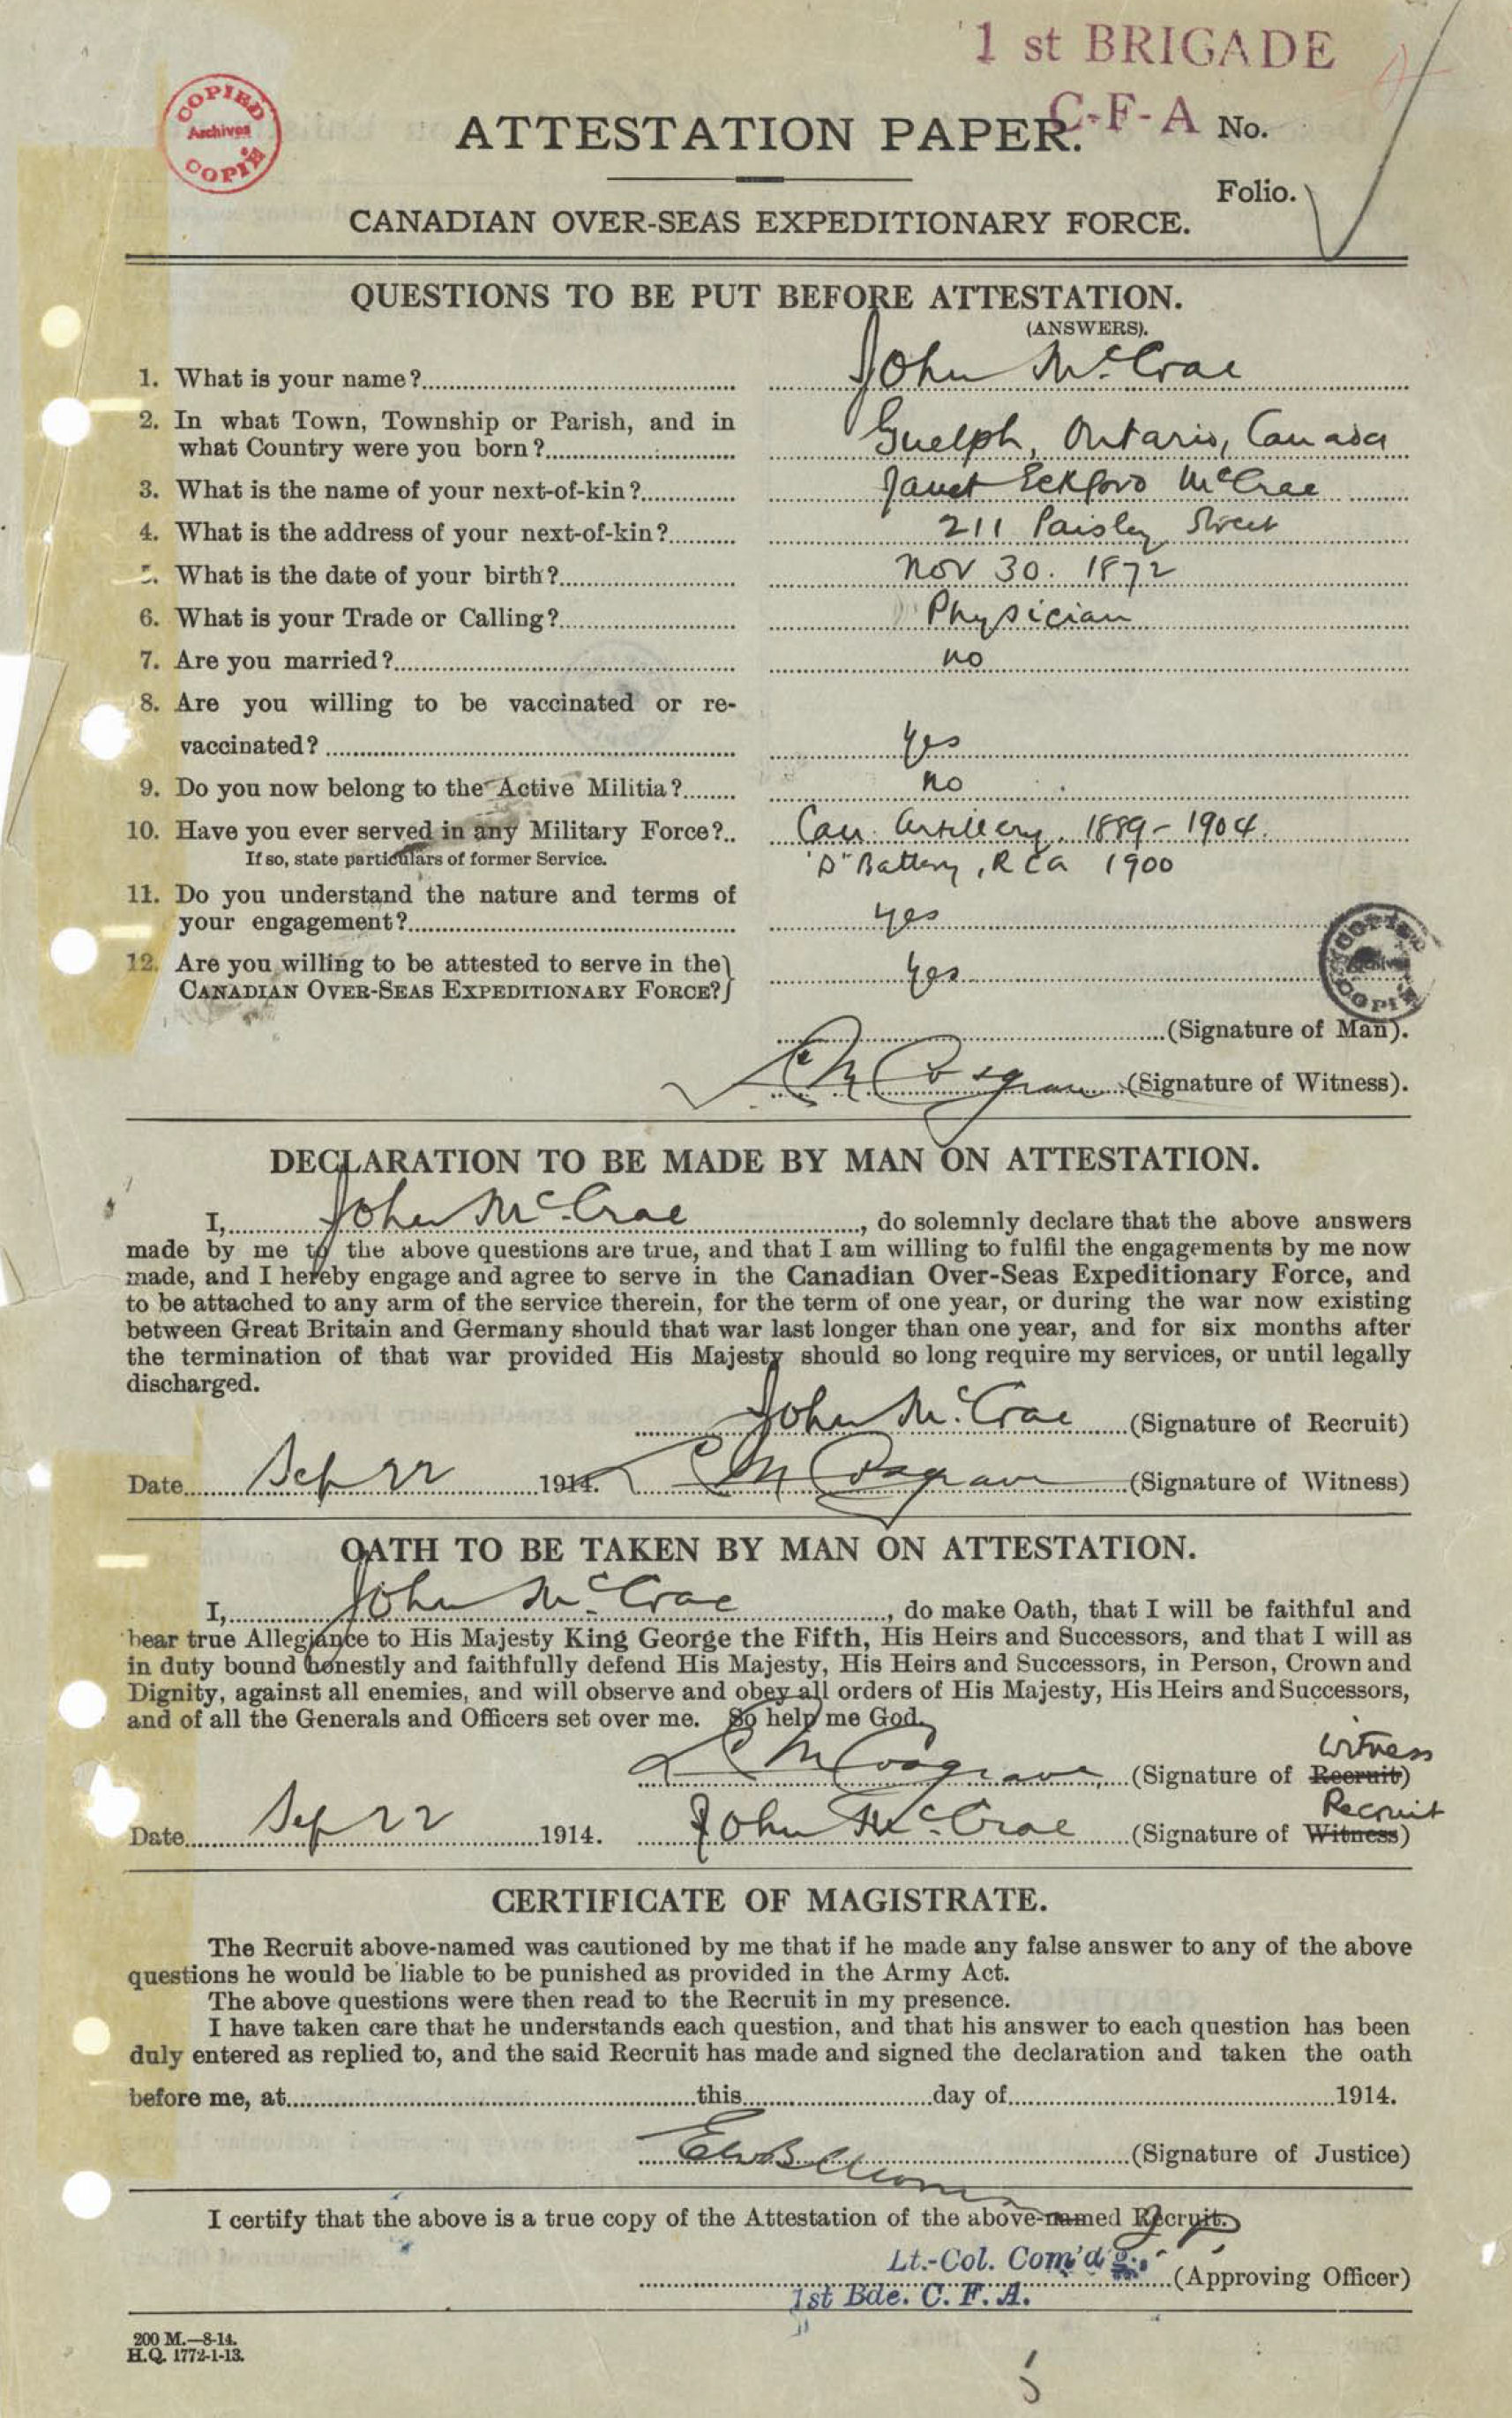 Attestation Paper (front)– Lieutenant Colonel John McCrae was born in Guelph, Ontario, on November 30, 1872.